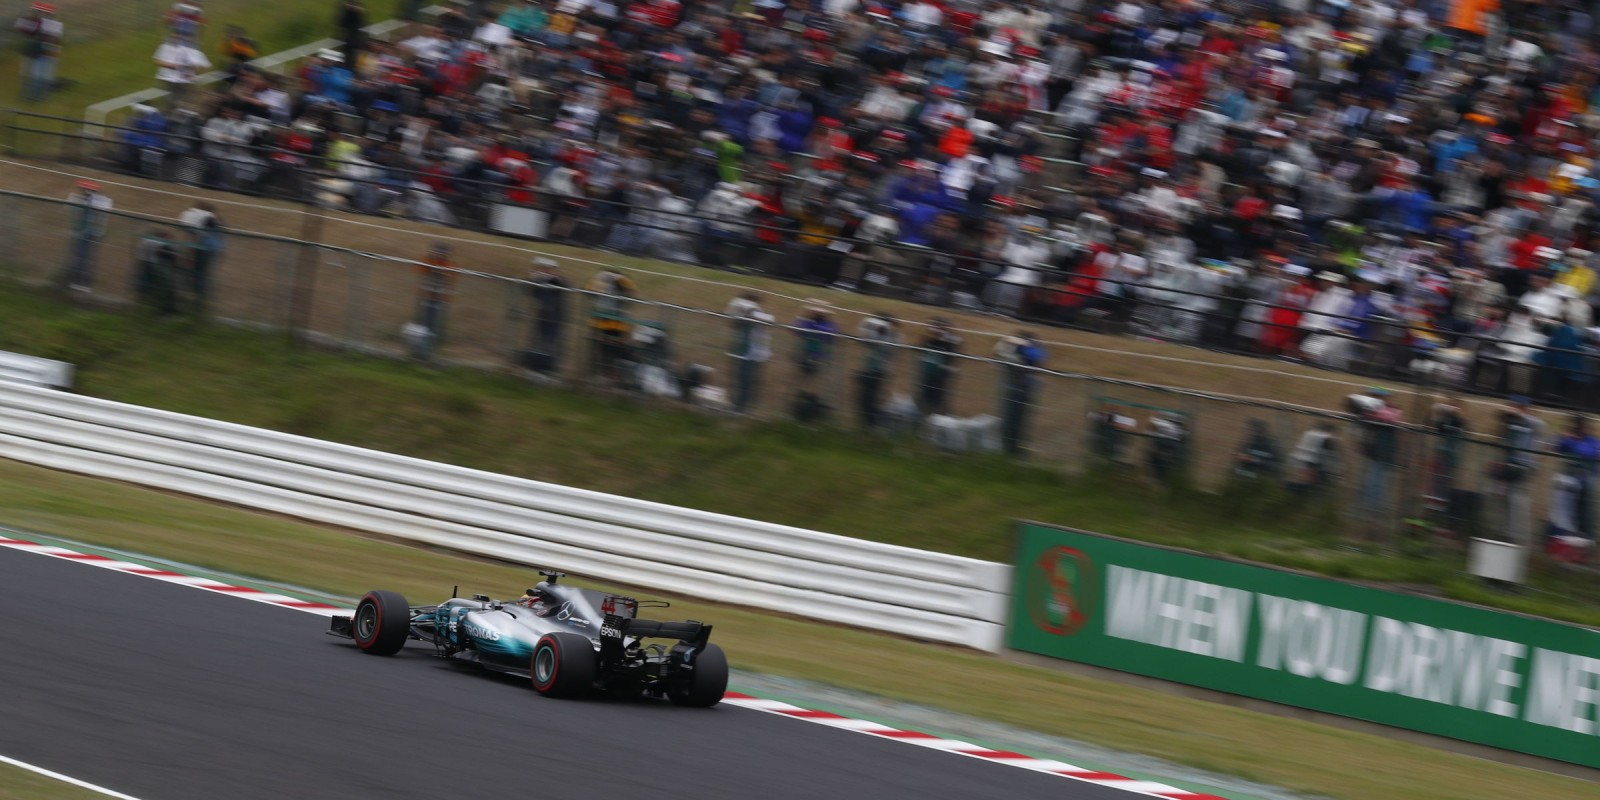 Friday images from the 2017 Japanese Grand Prix